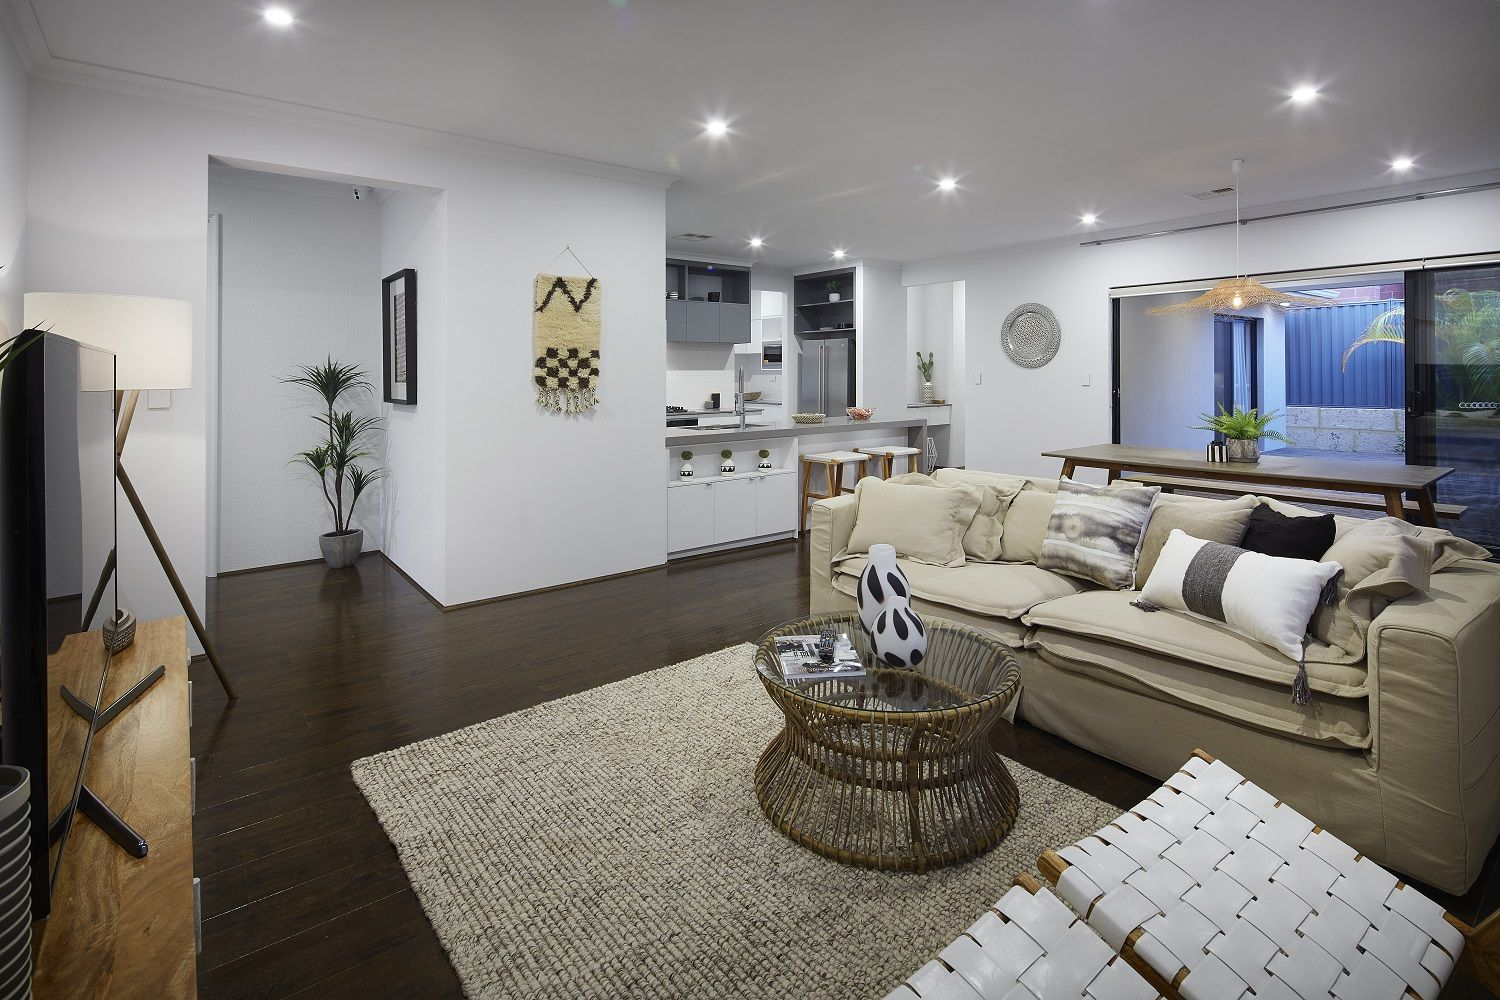 Banksia grove wa 6031 4 beds house for sale turnkey from banksia grove wa 6031 image 0 malvernweather Image collections